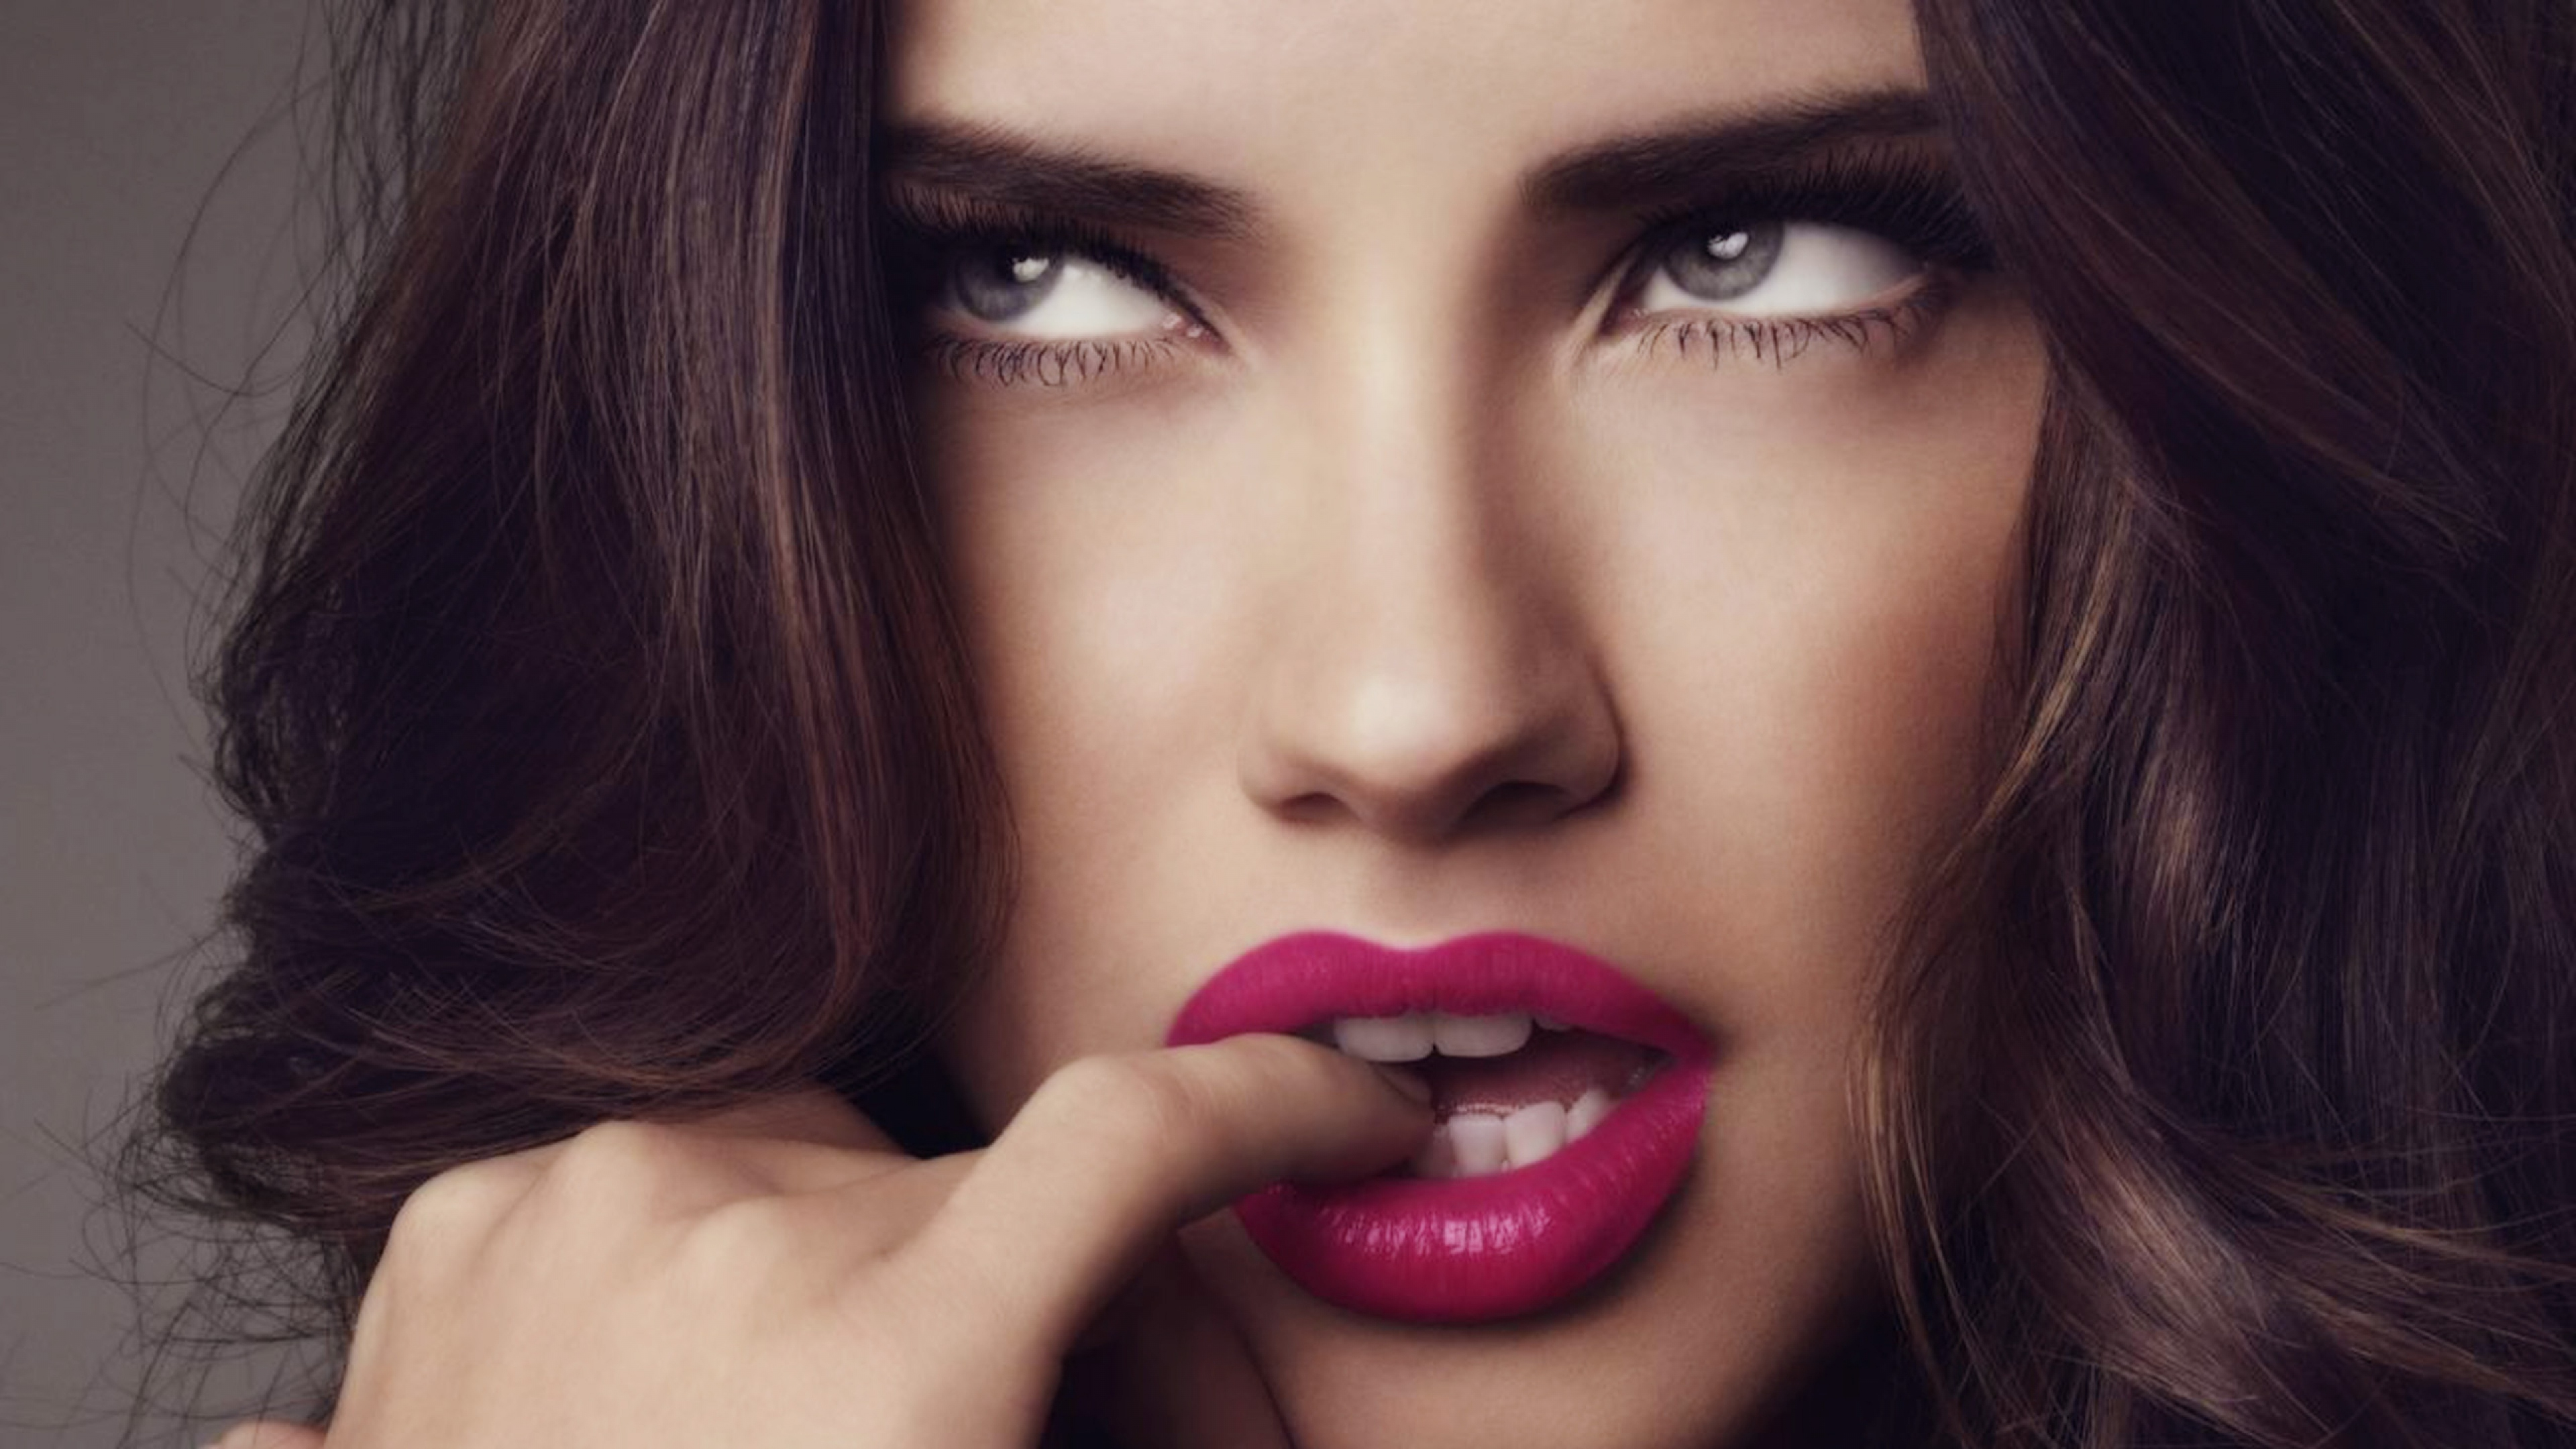 amazing adriana lima fantastic look hd mobile desktop background free photos